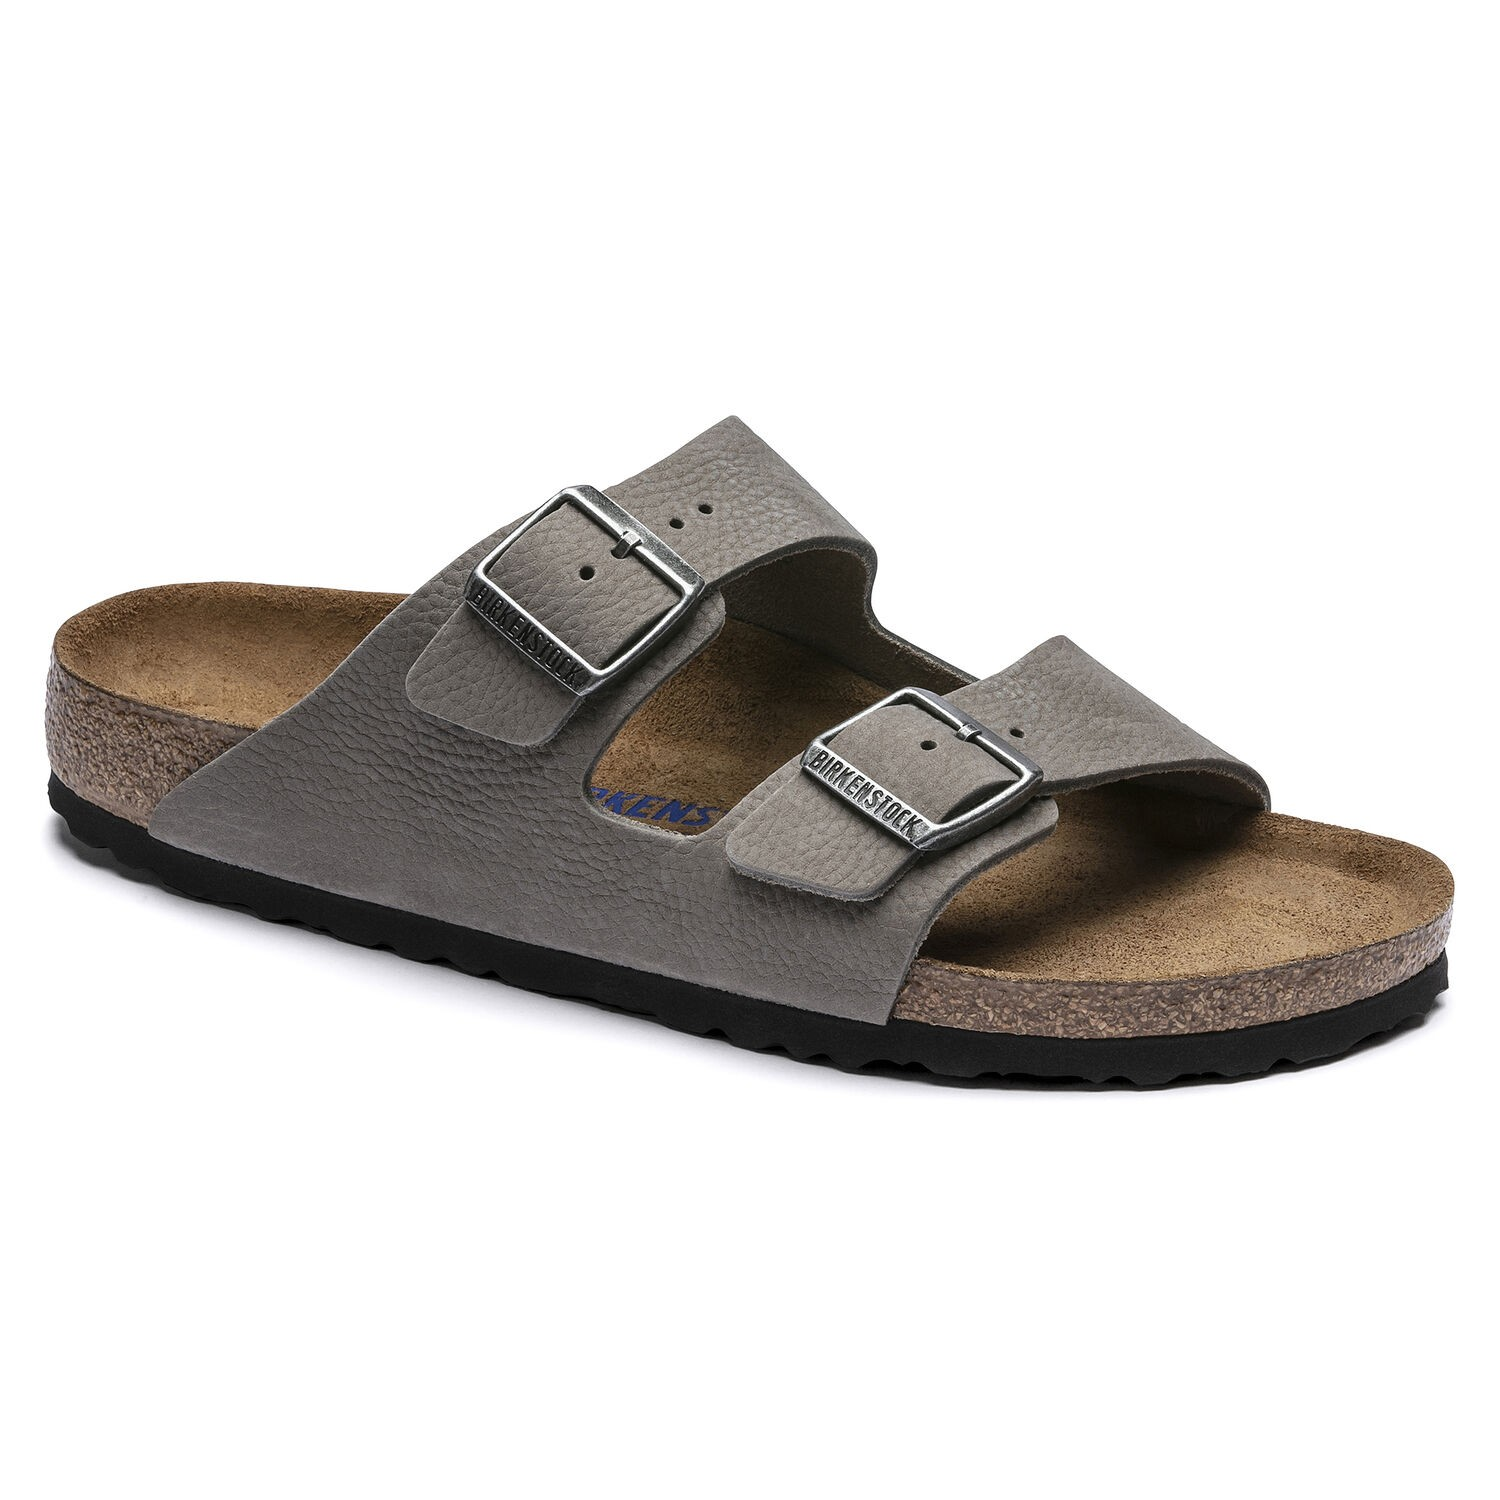 Birkenstock Arizona SFB NU Soft Whale Gray Regular